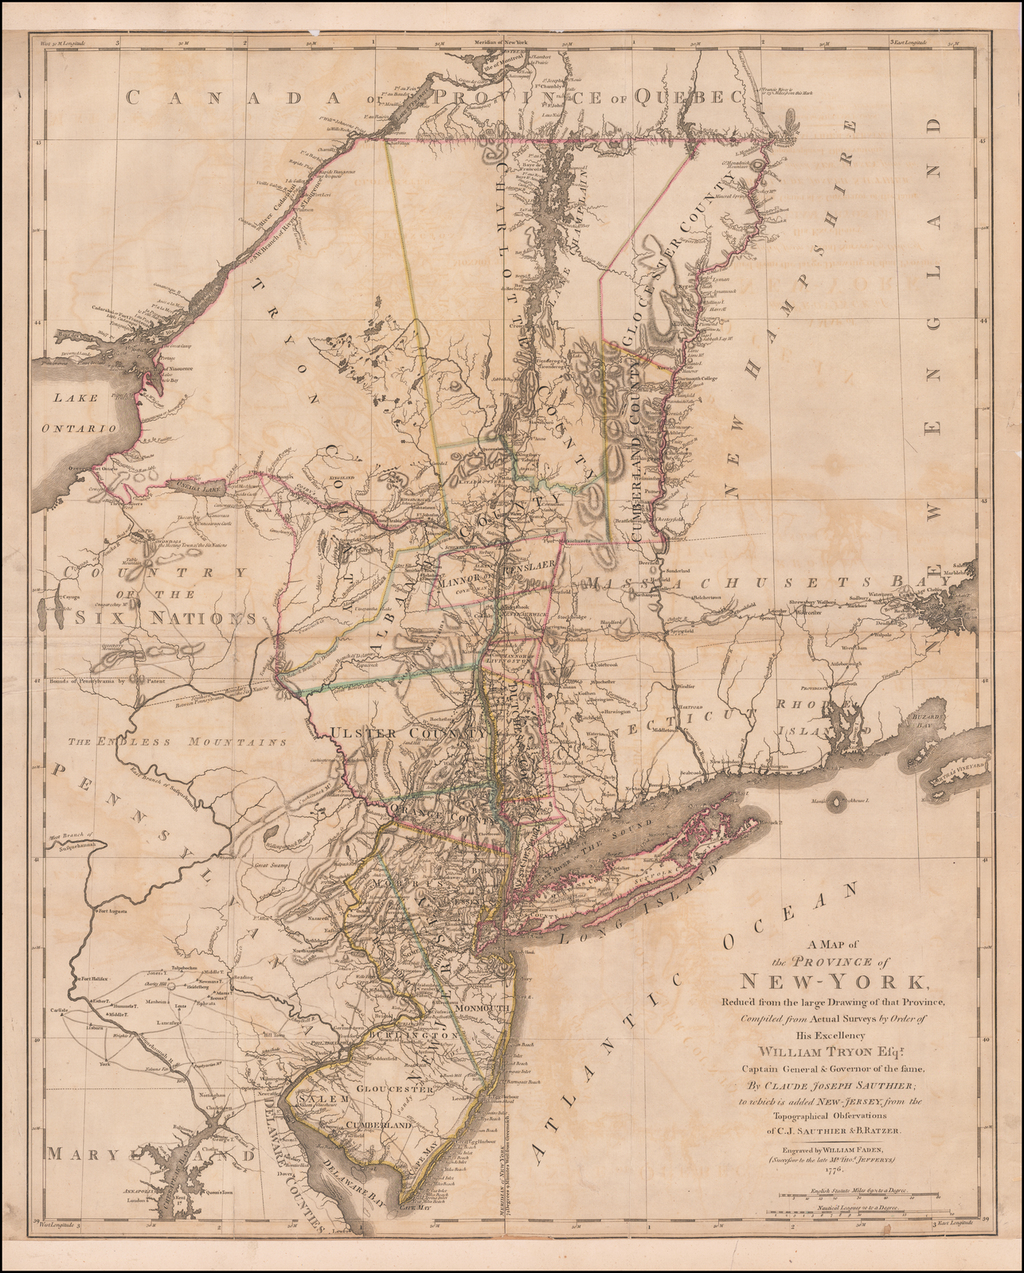 A Map of the Province of New-York, Reduc'd from the large Drawing of that Province, Compiled from actual Surveys by Order of His Excellency William Tryon Esqr. Captain General & Governor of the Same, By Claude Joseph Sauthier; to which is added New-Jersey . . . 1776 By Claude Joseph Sauthier / Bernard Ratzer